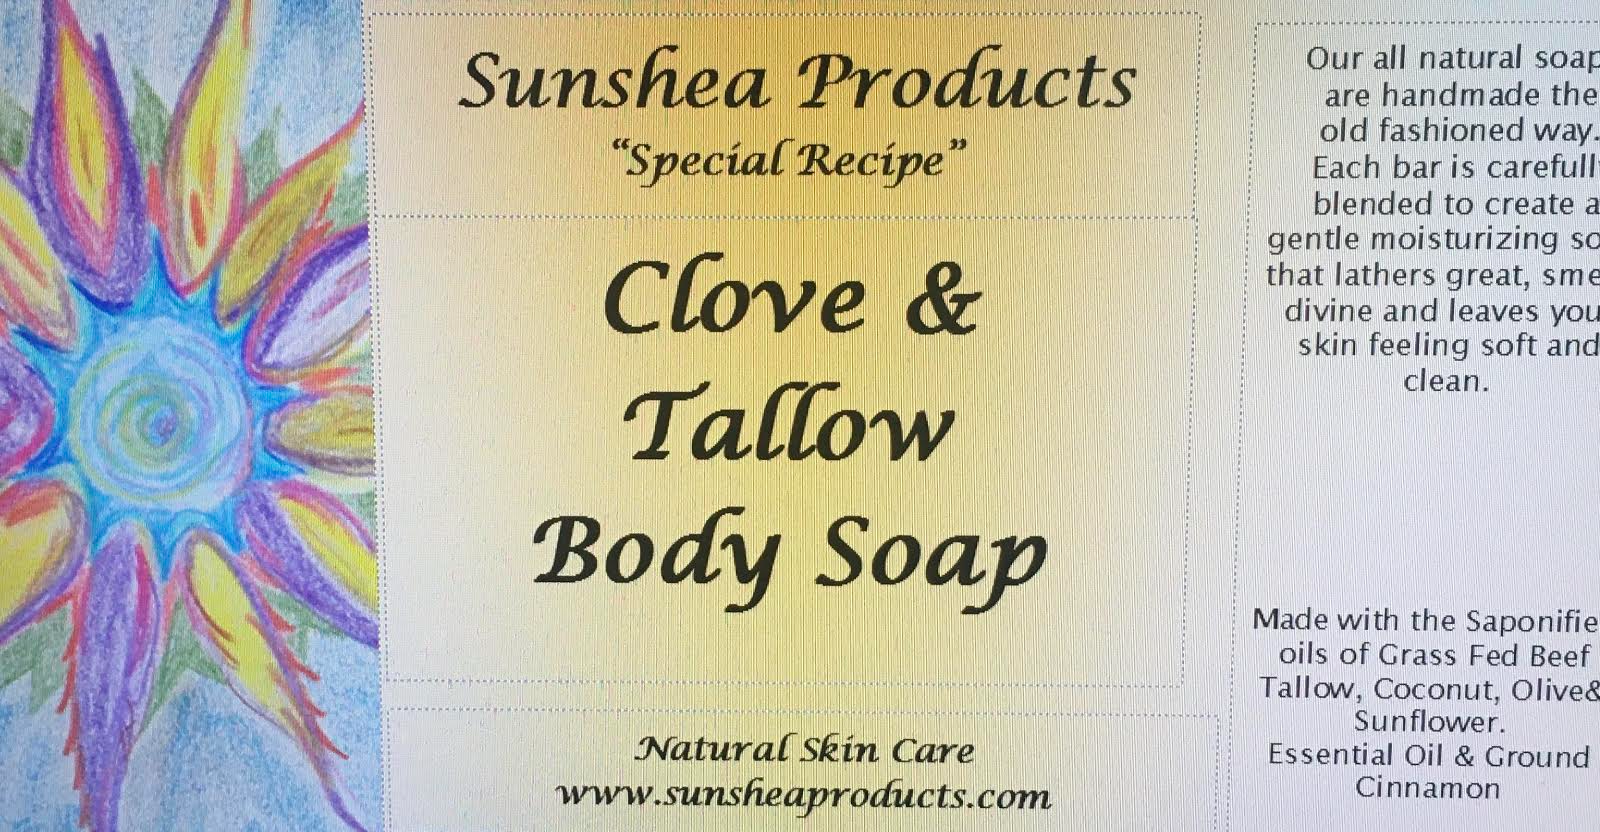 Clove & Tallow Body Soap